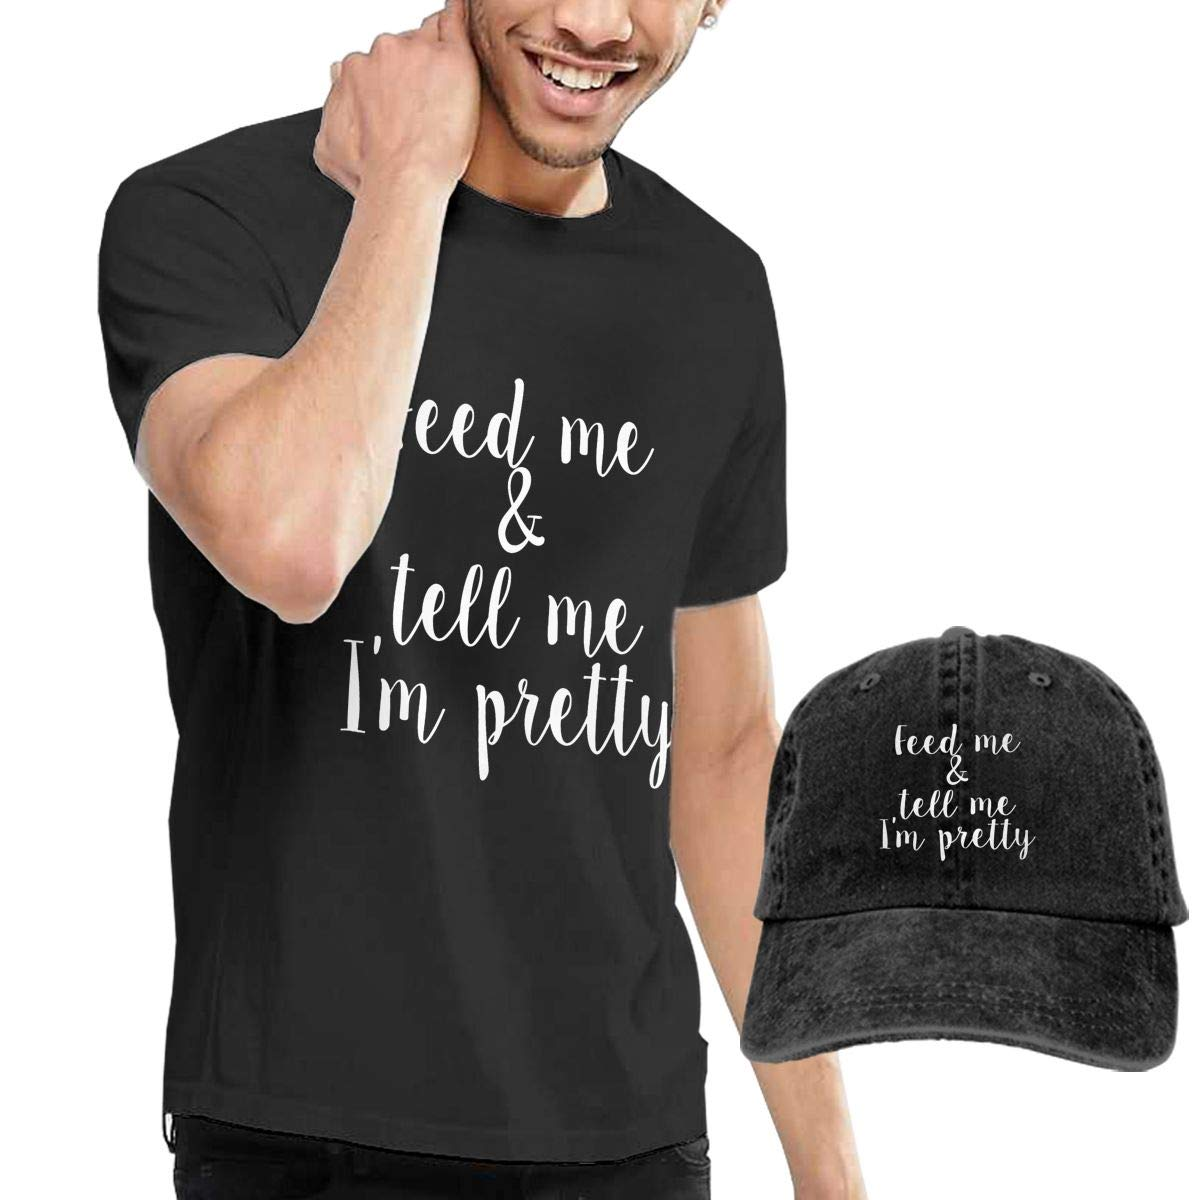 Black Feed Me Tacos Tell Me I'm Pretty Men's ShortSleeve Shirt Tops And Denim Cap Combo Set